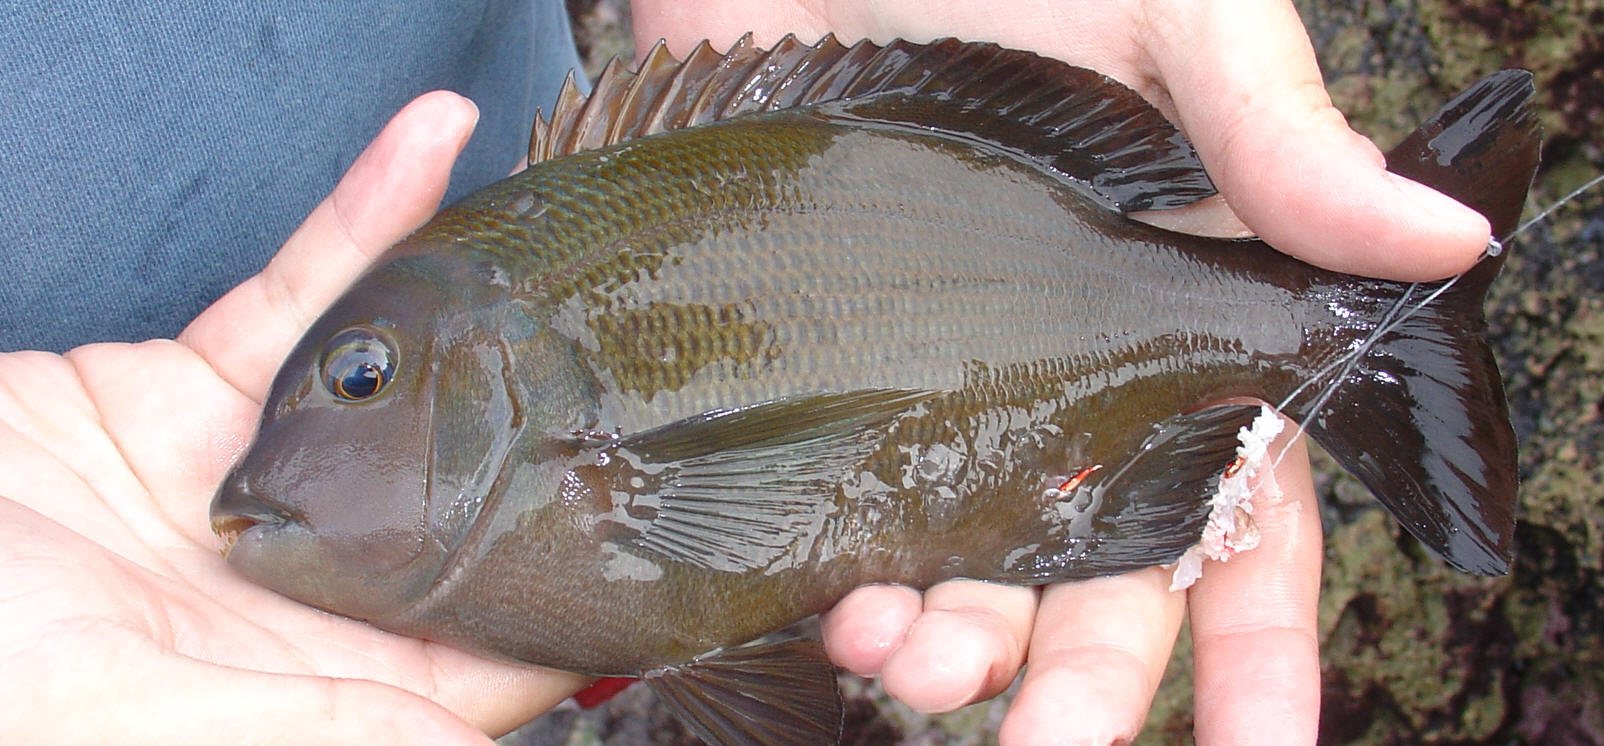 Freshwater fish of southern africa - Freshwater Fish Of Southern Africa